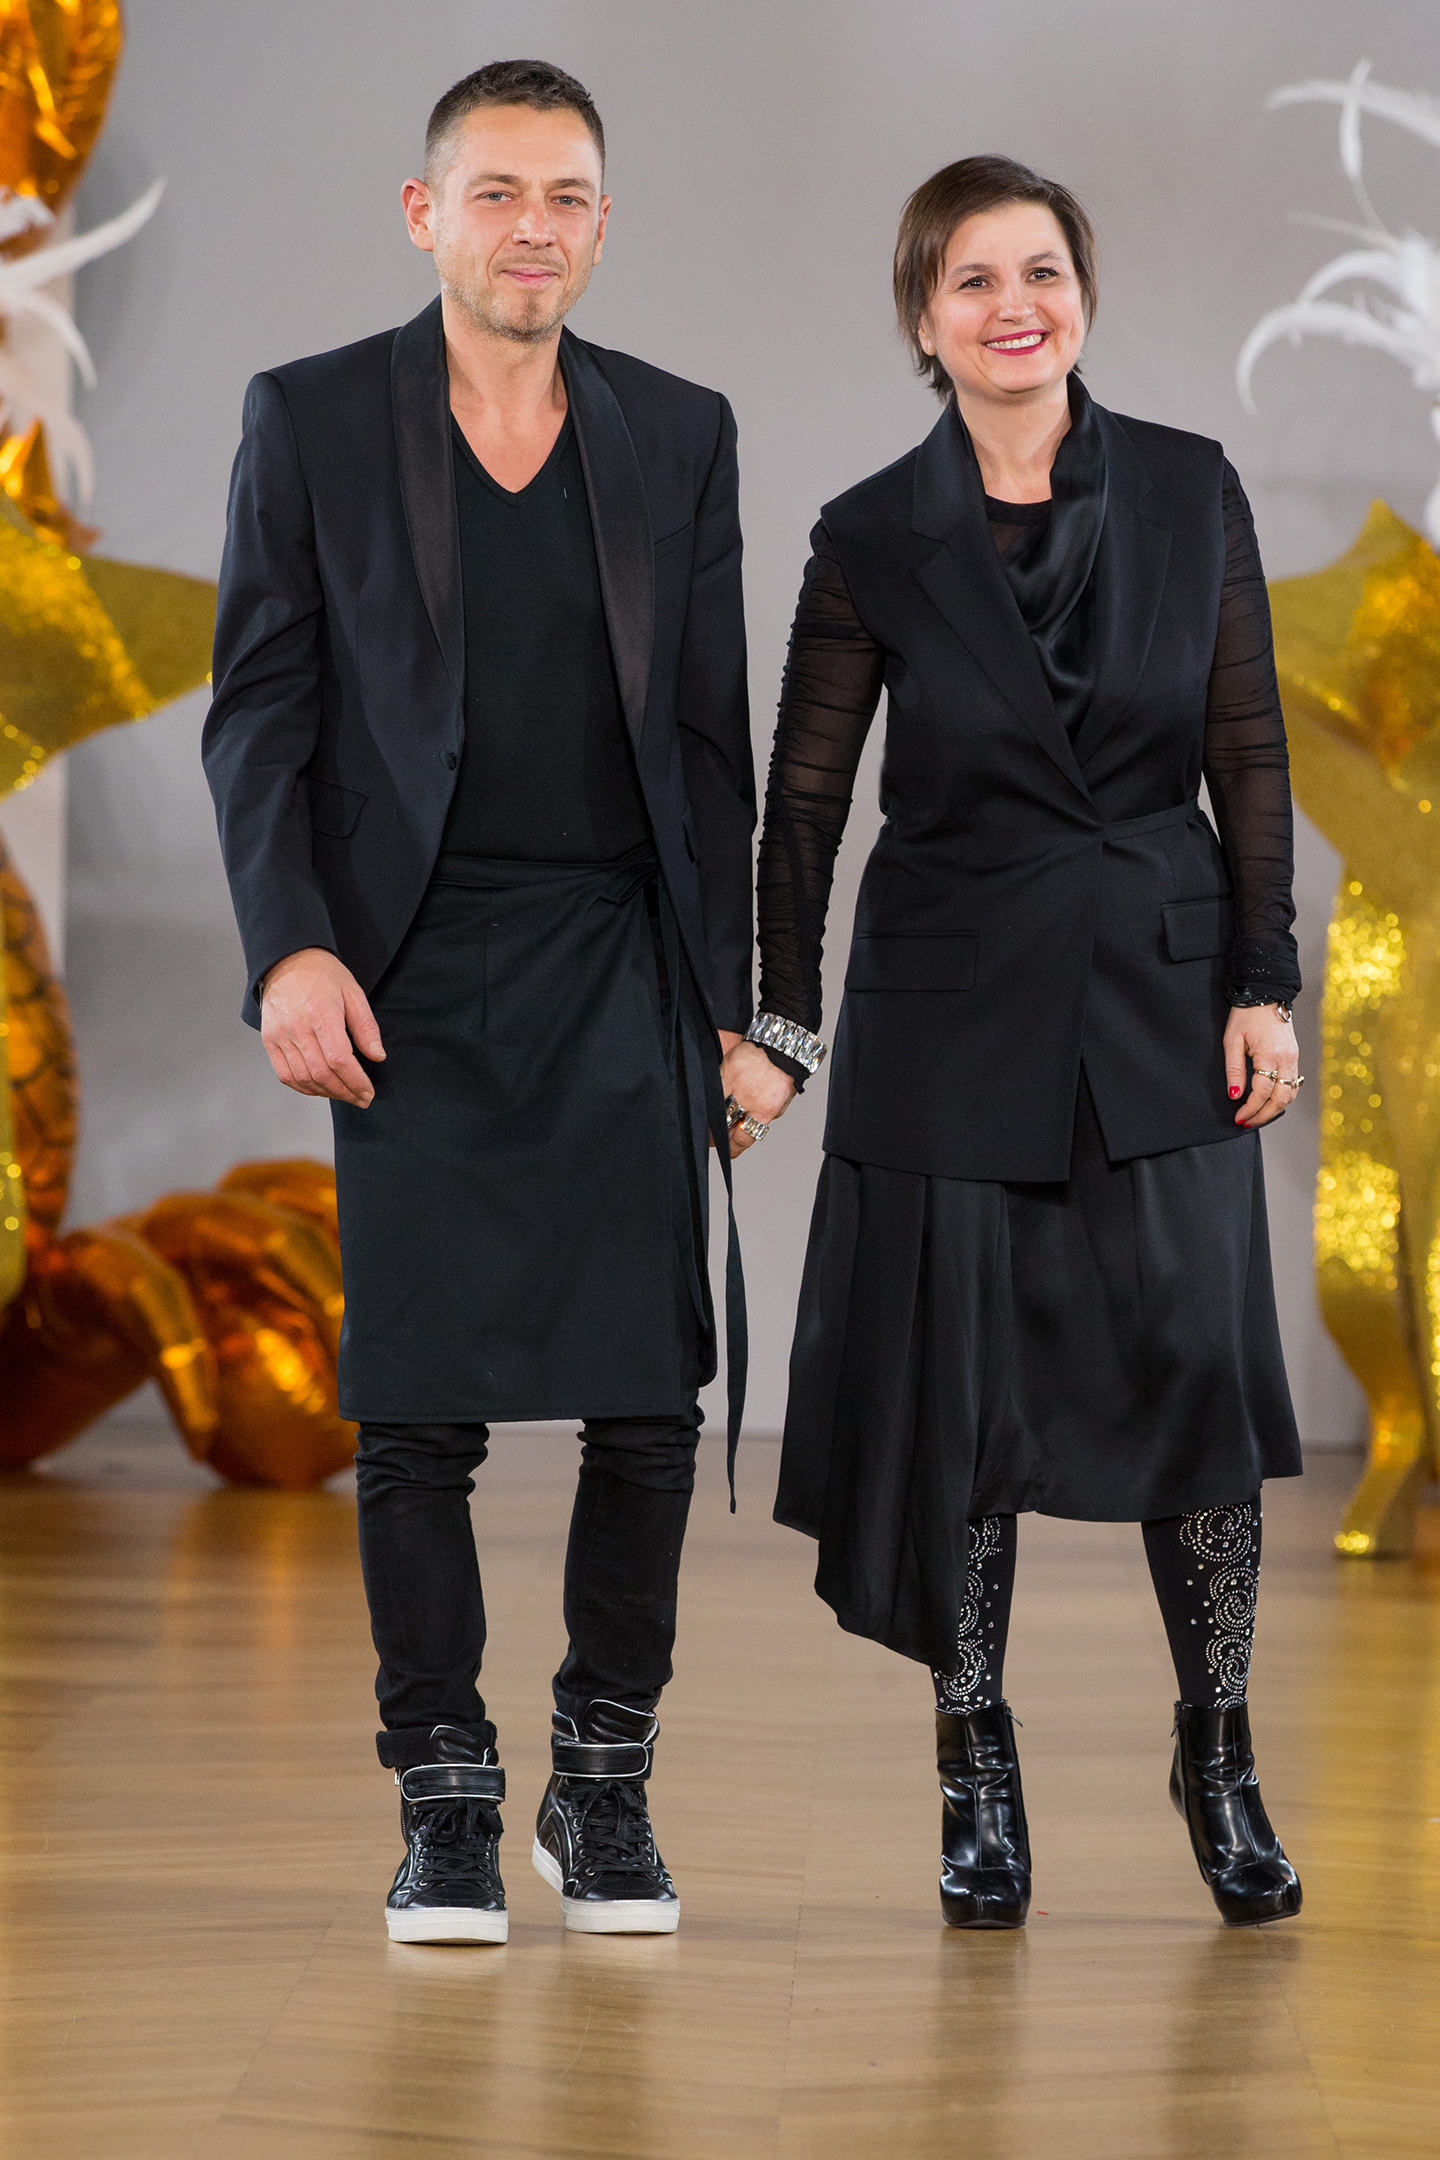 The designers of on aura tout vu yassen samouilov livia stoianova final fashion show